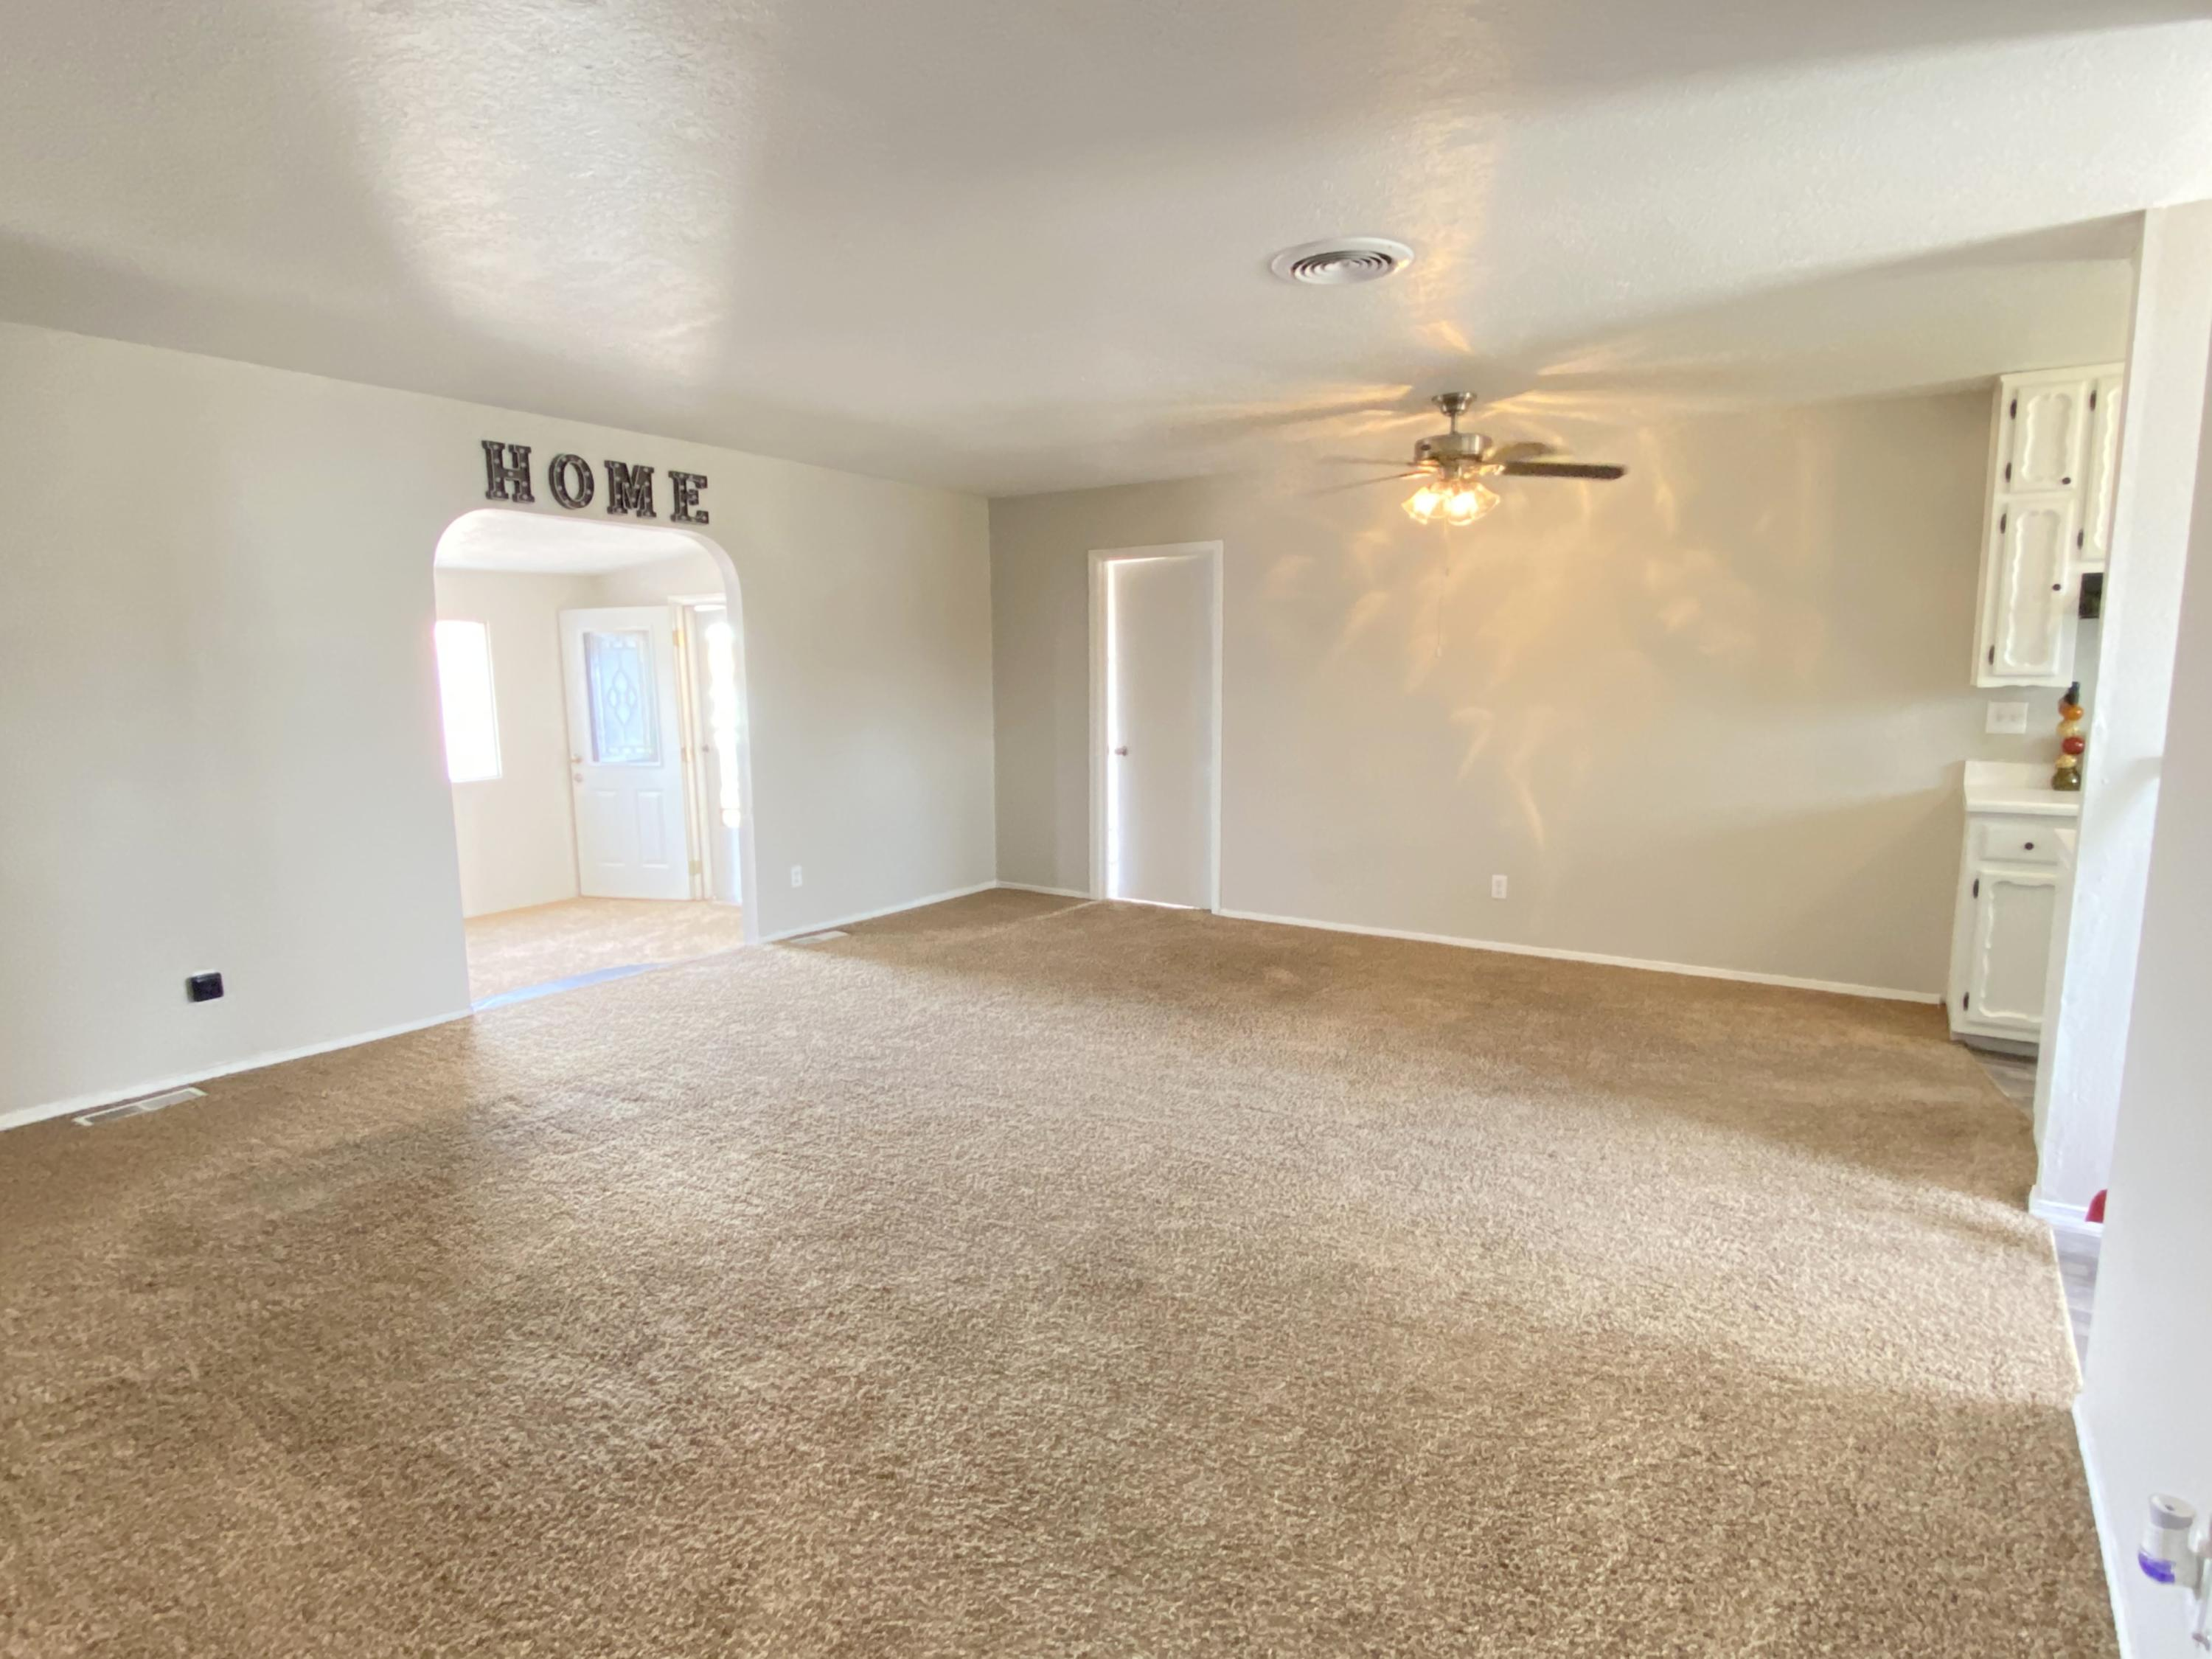 Charming 1,300 SF Home Located in the Quiet Neighborhood of the Luna Addition.  3 Bedrooms and 1.5 Baths.  BIG Square Lot is almost 1/4 Acre.  Large 250 SF Living Room PLUS a 200 SF Den/Game Room/Office etc. Master Suite has Walk-In Closet and Bonus 2nd Closet.  Newer Carpet Throughout, Updated Kitchen and Bathrooms.  BIG Backyard with Storage Shed, Lawn and Several Trees.  Back Yard access for storing RV, Boat, etc.  Close to Several Amenities: Grocery, Retail, Restaurants, Home Improvement Stores, the Luna Mansion, Teofilo's and the Rail Runner Station.